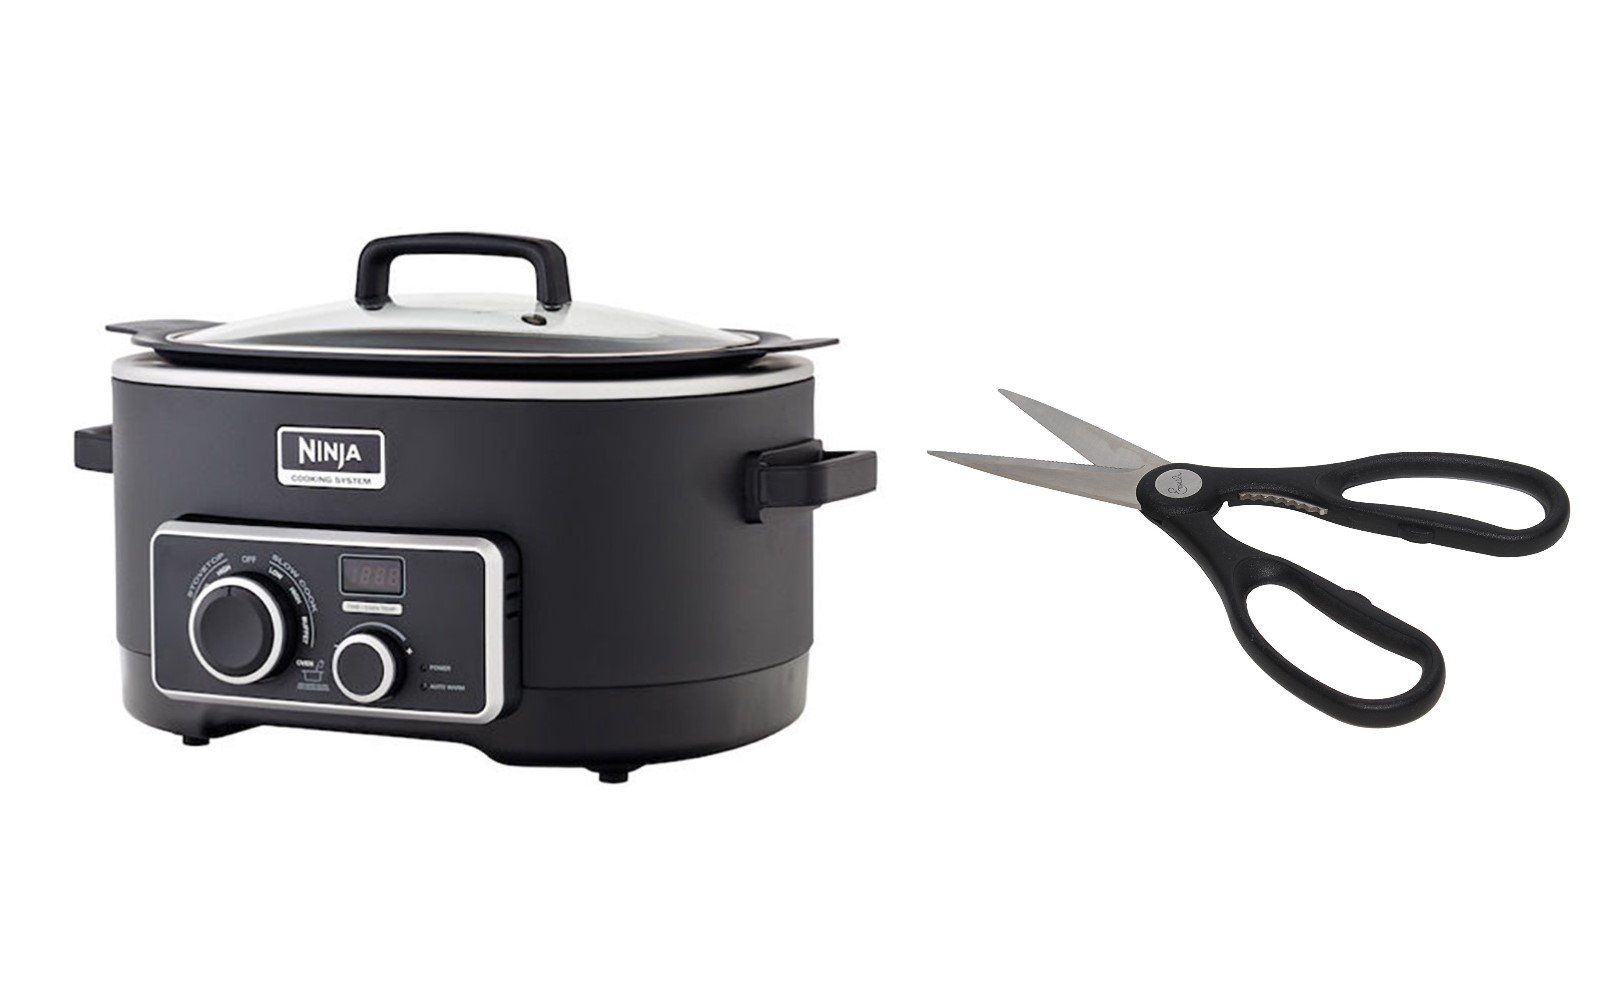 Ninja 3-in-1 Cooking System [MC750] Slow Cooker with Emeril Stainless Steel Kitchen Scissors